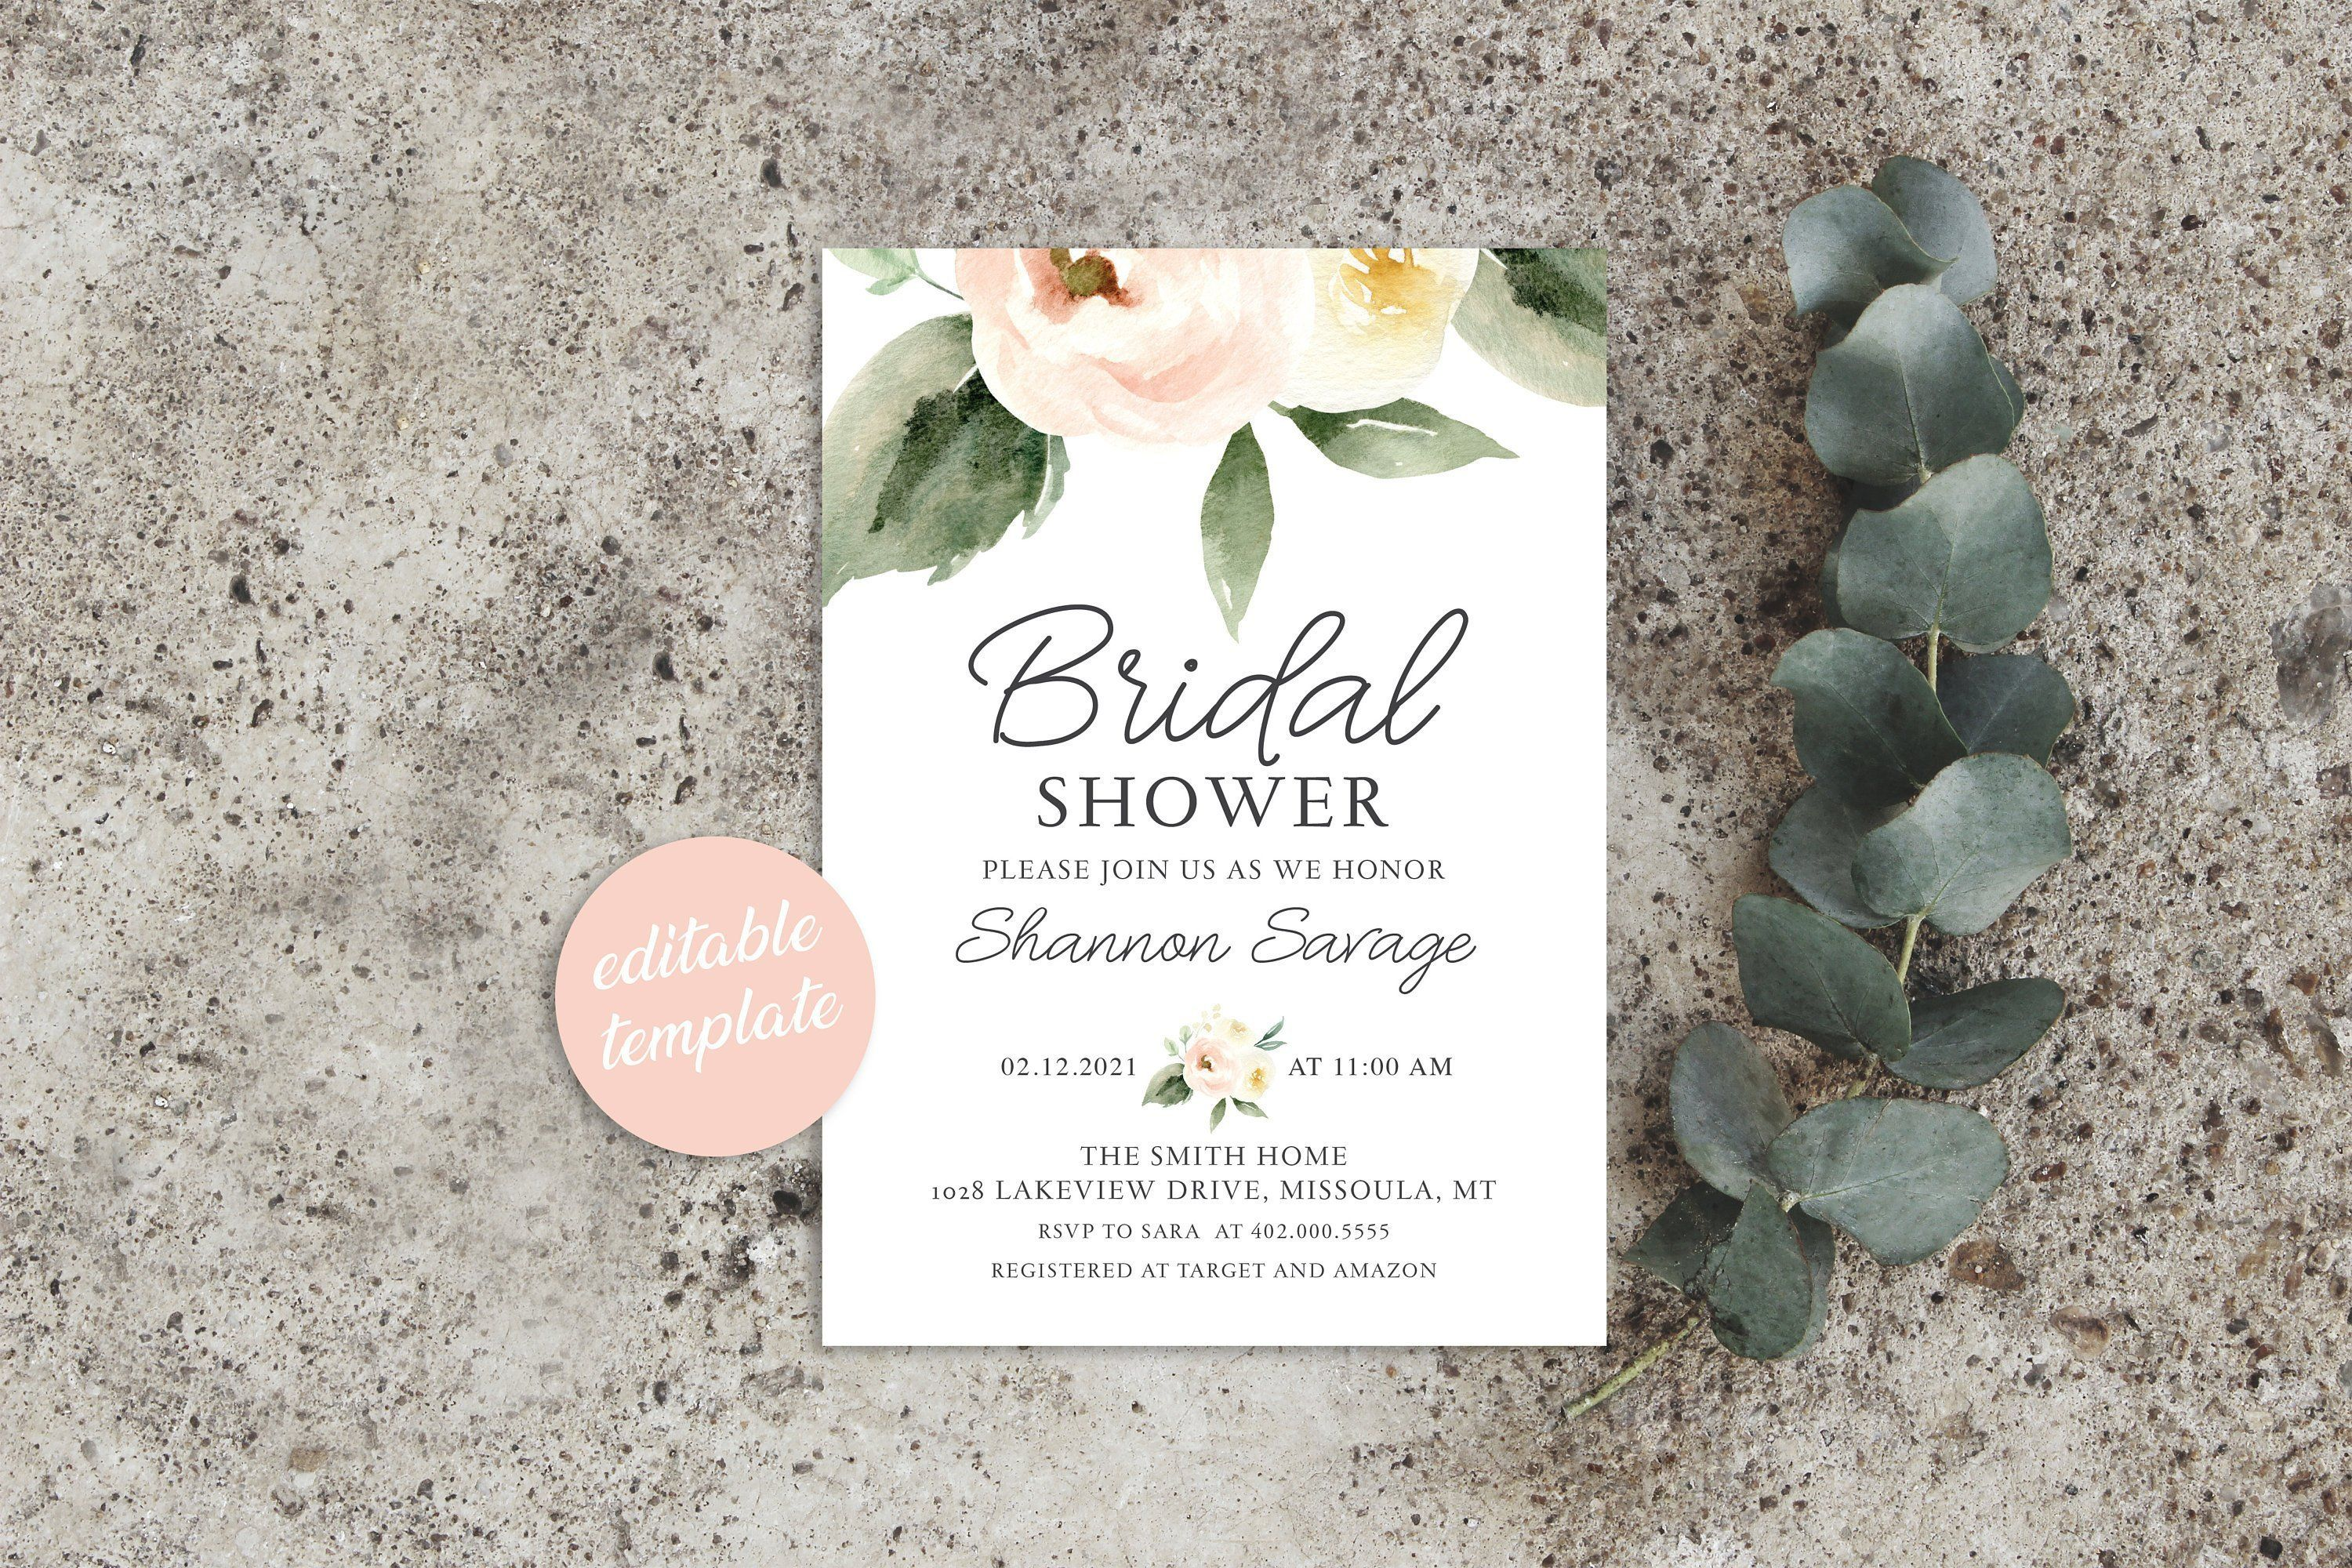 Blush Bridal Shower Invitation Template Bridal Shower Invitation